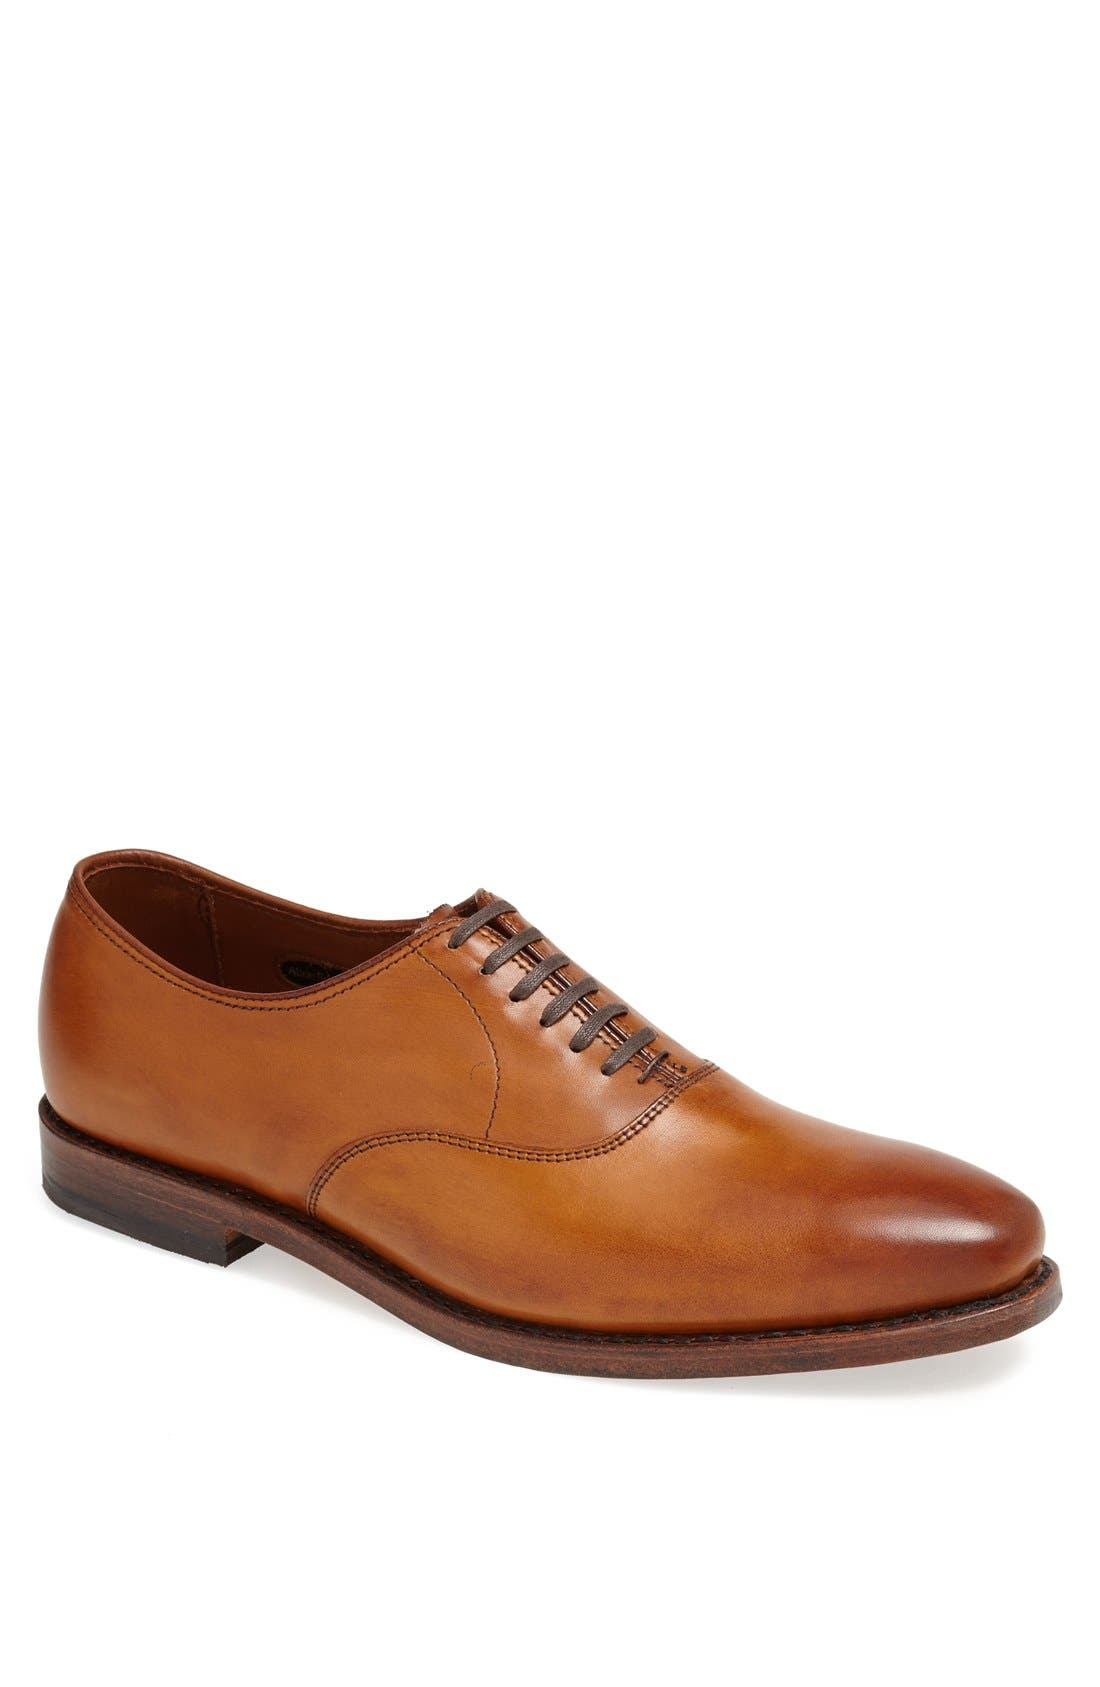 Carlyle Plain Toe Oxford,                             Main thumbnail 1, color,                             WALNUT LEATHER